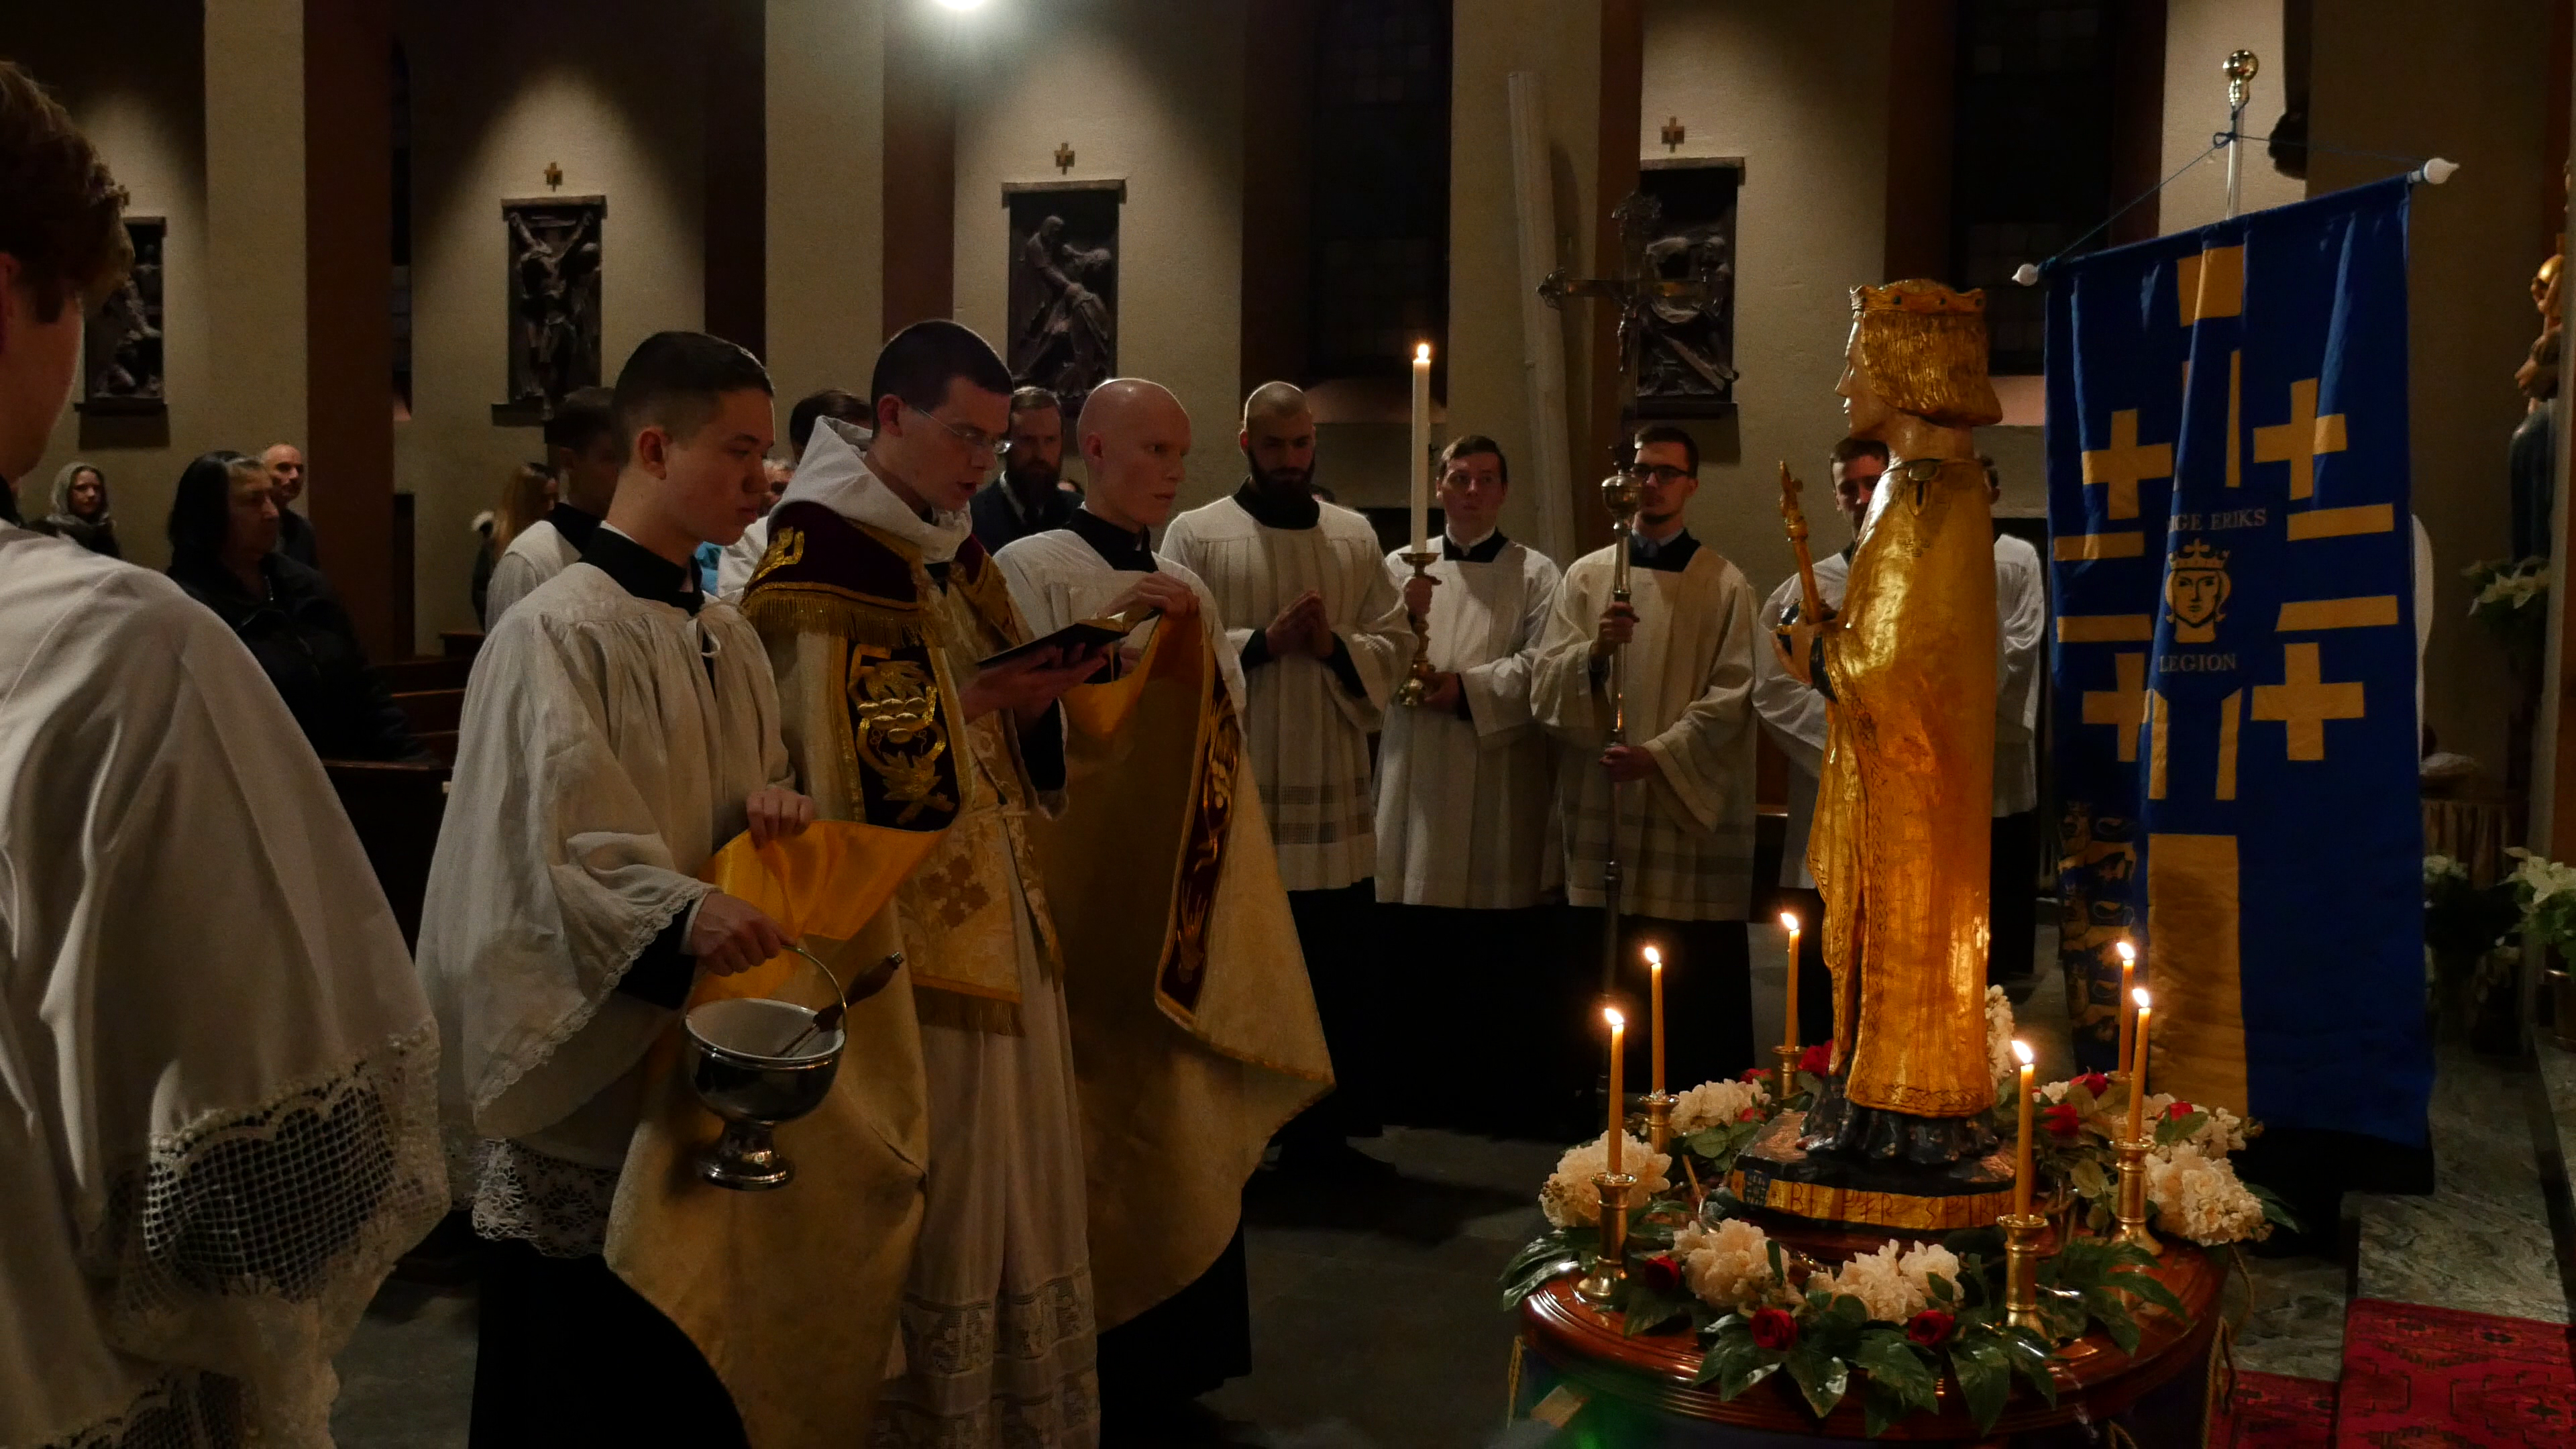 Inaguaration of the statue of Saint Eric donated to the church in Gothenburg.